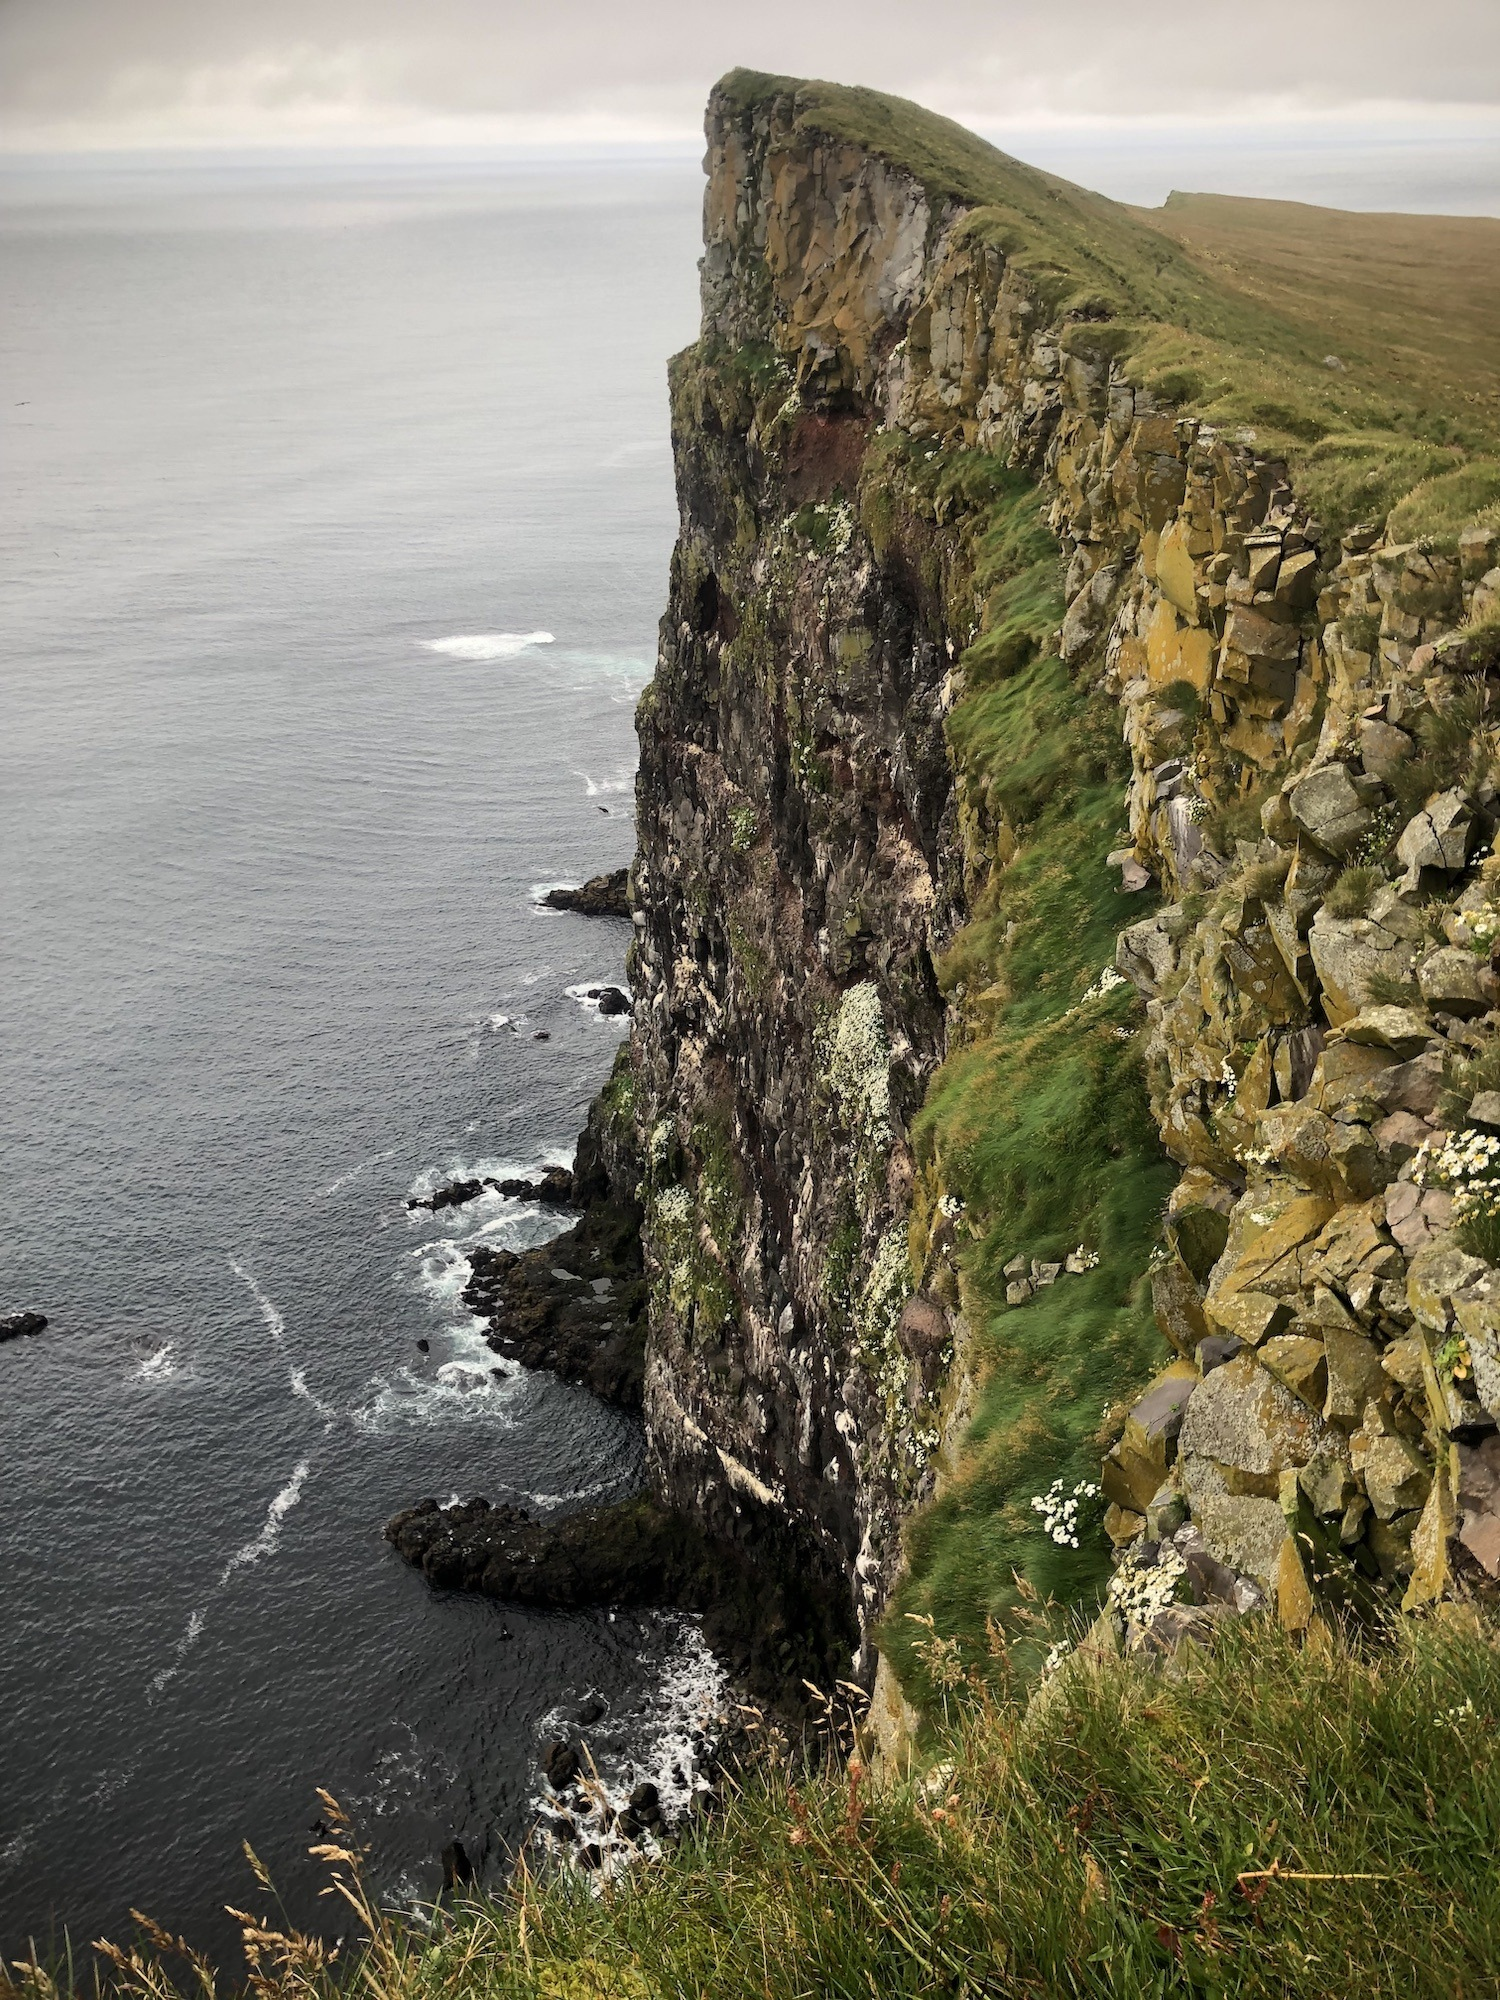 Sideview of cliff